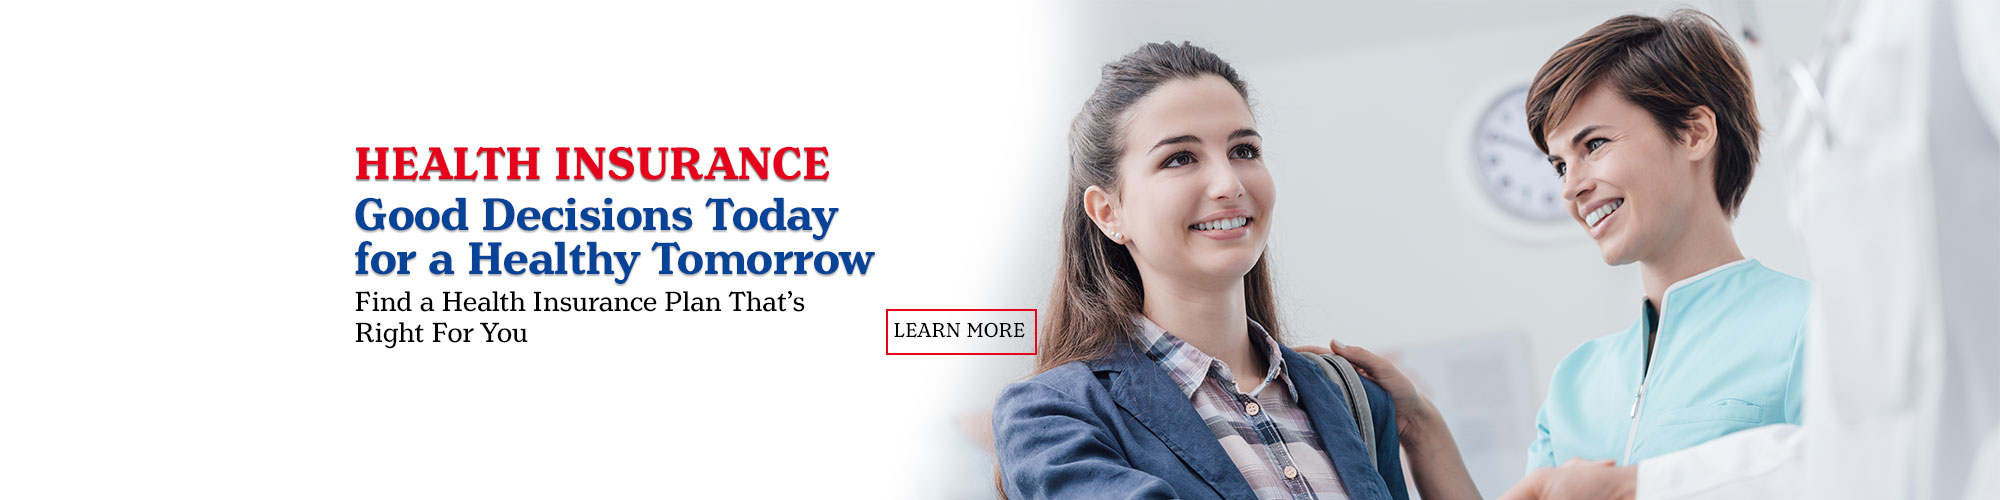 Health Insurance Good Decisions Today for a Healthy Tomorrow. Find a health plan that's right for you. Learn More.